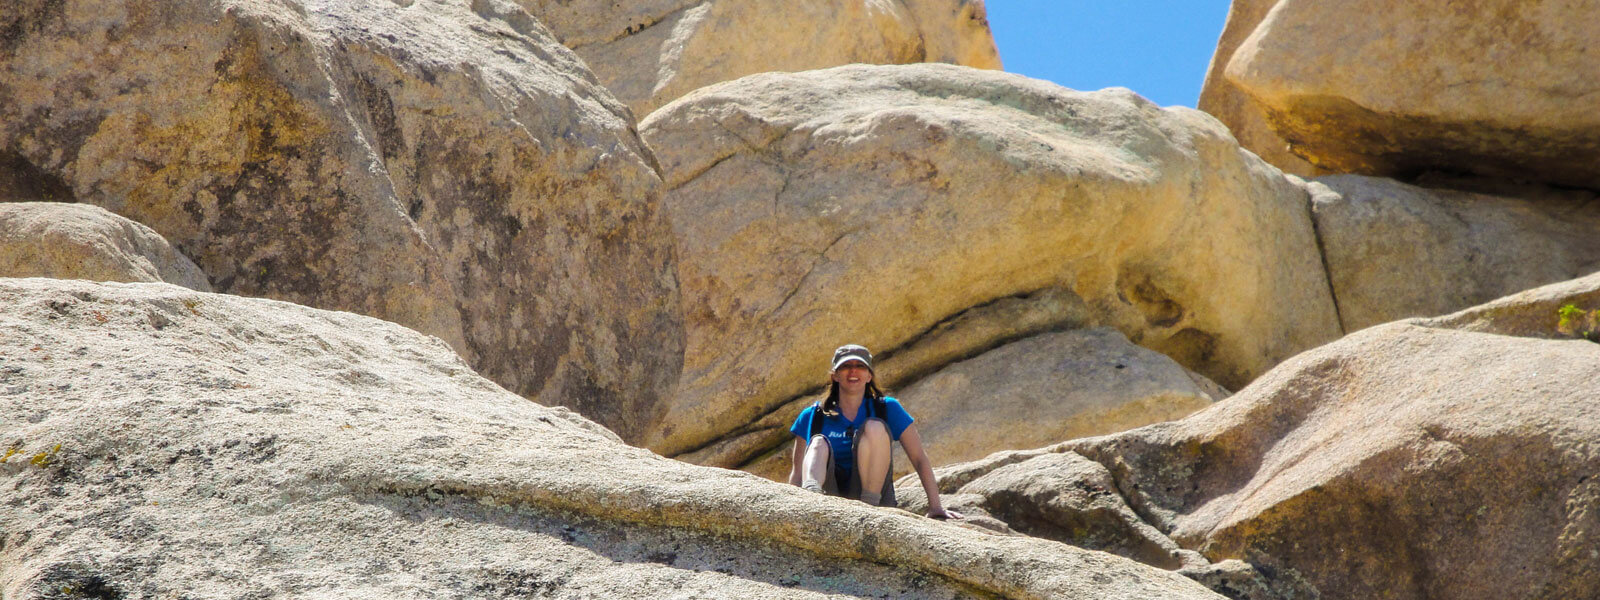 Boulder scrambling in Joshua Tree